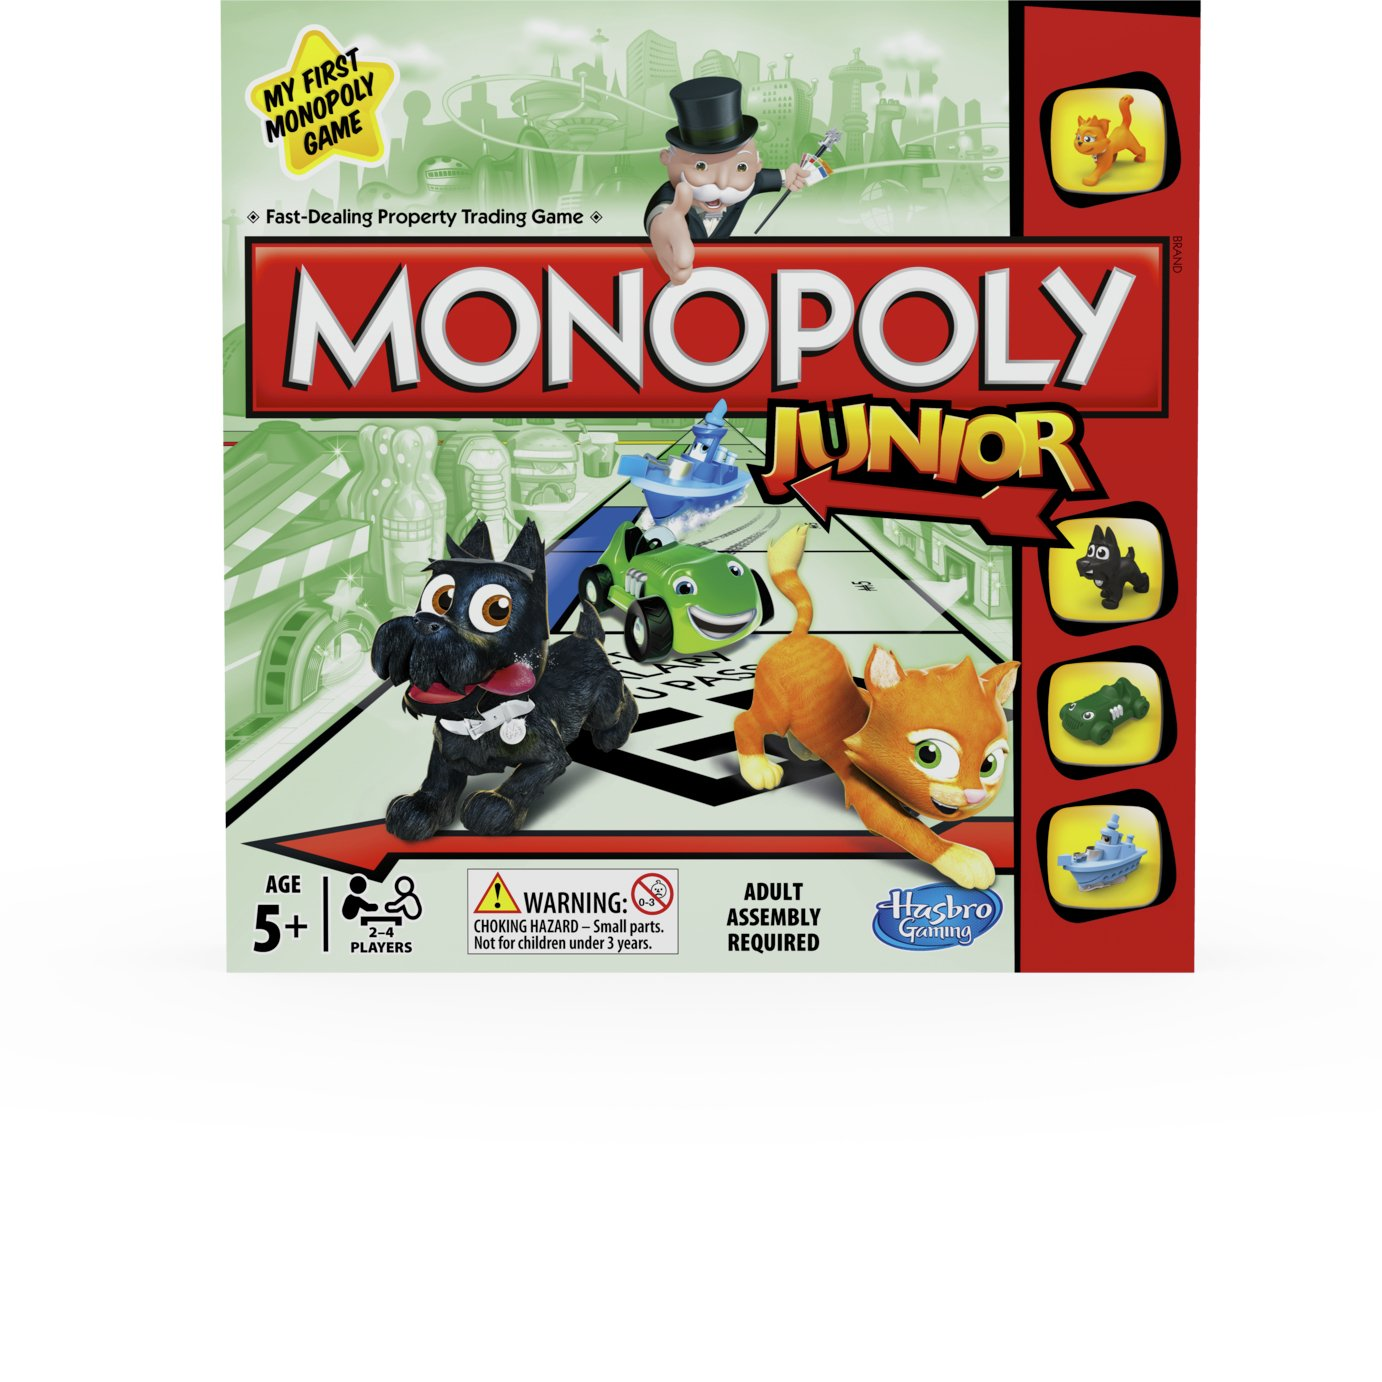 Monopoly Junior Board Game from Hasbro Gaming.